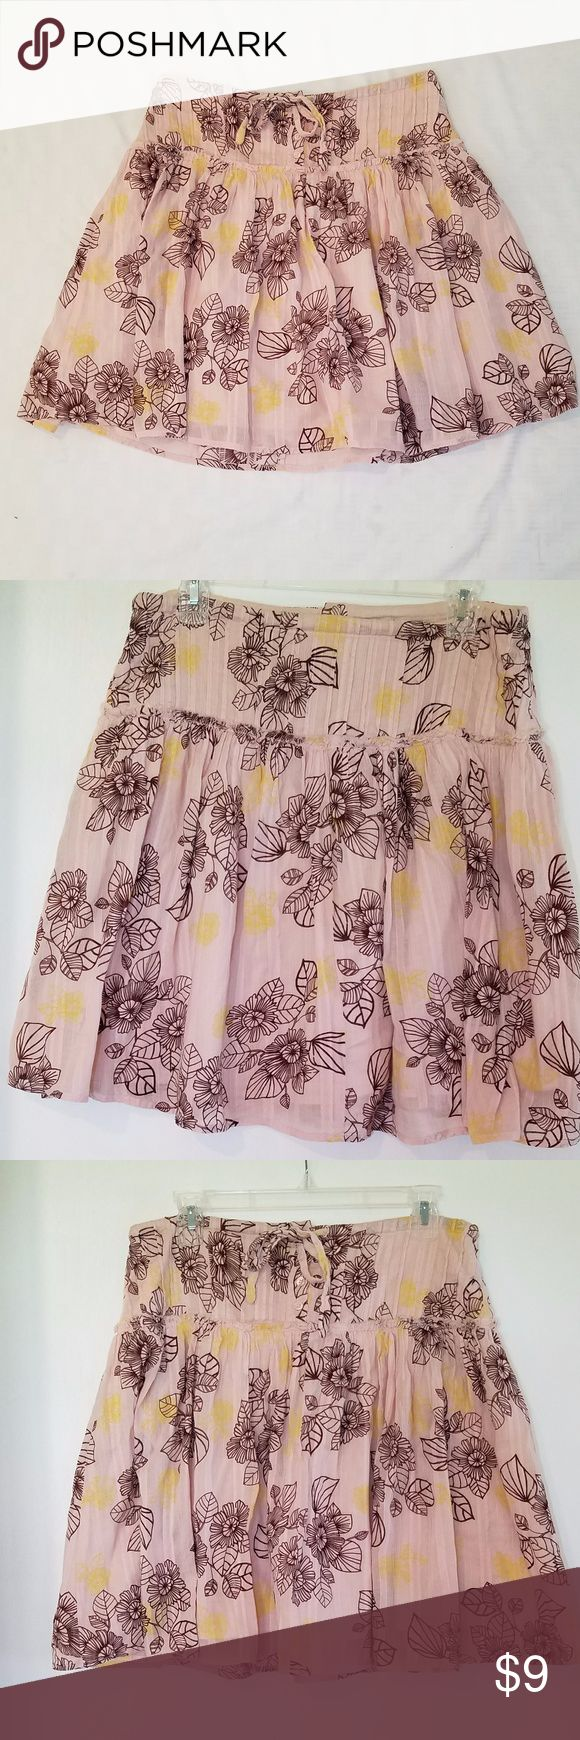 """Lux floral pink skirt flowy lightweight This is a beautiful, lightweight soft pink with brown and yellow florals skirt by LUX with a drawstring waist.  Size 9  Condition: pre-owned but good condition, no stains, tears or snags  Features: drawstring waist button fly under solid light pink lining the seam around the hips has an unfinished look to it machine washable 100% cotton Made in India  Measurements while item is lying flat without stretching: Length from top to bottom: 20.25"""" waist (to…"""